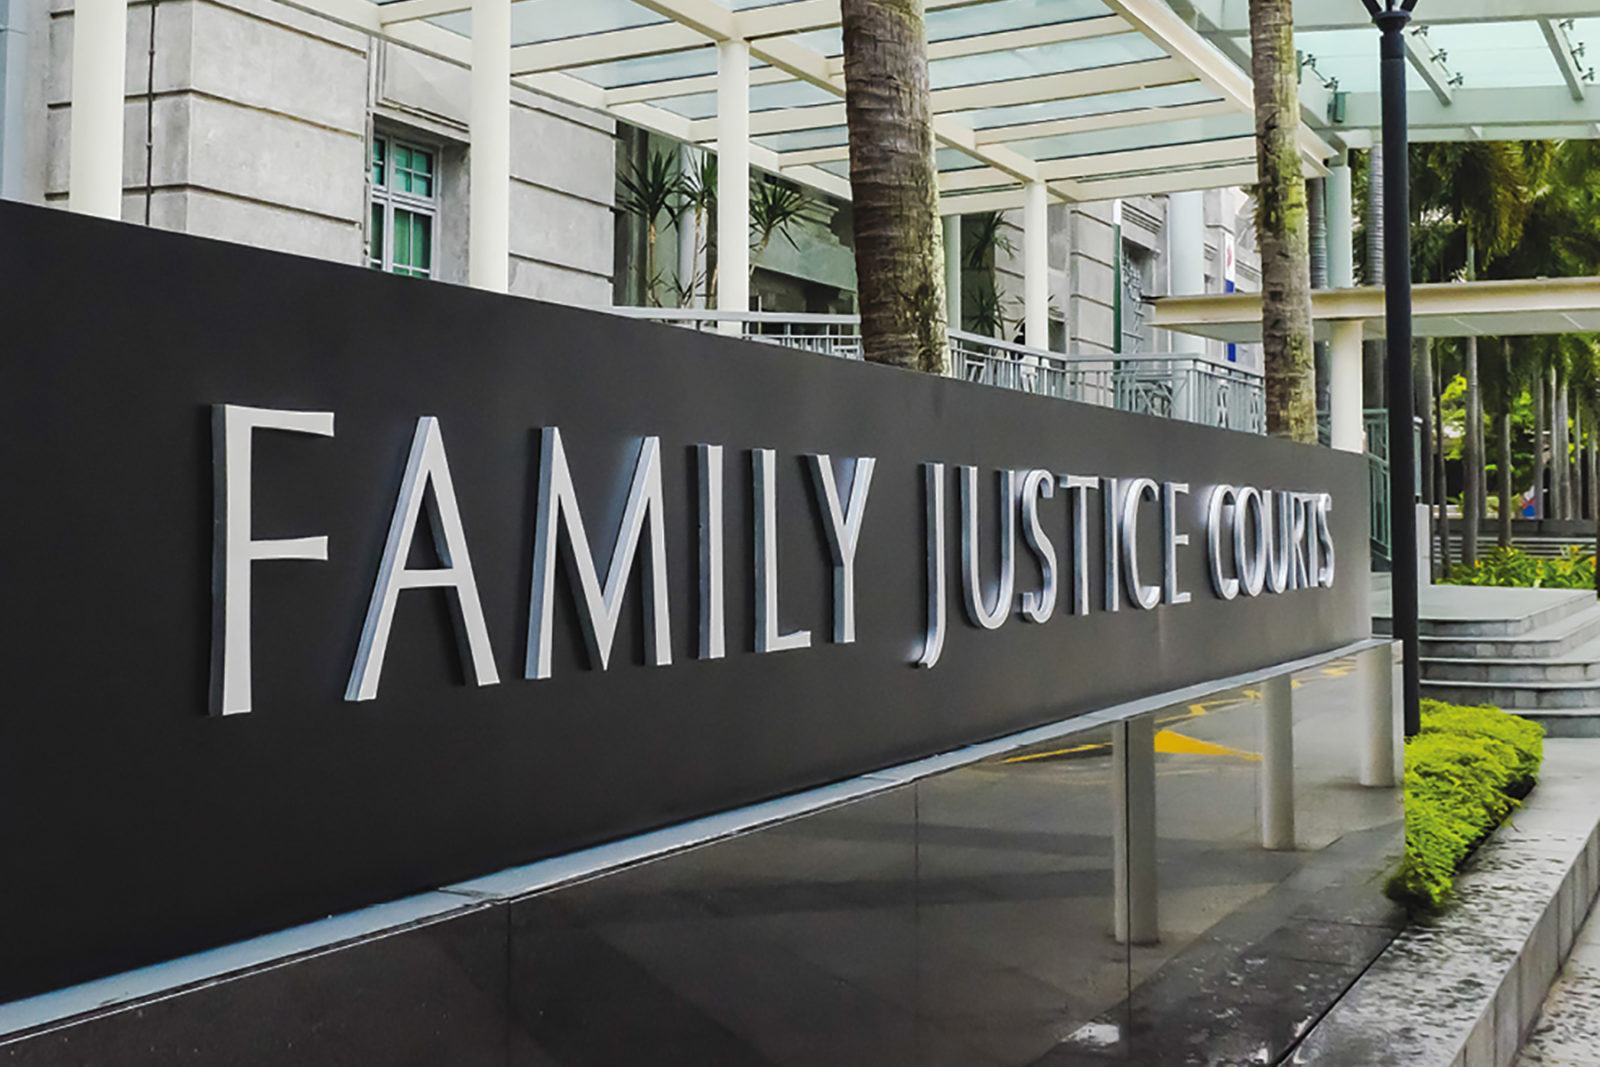 The Family Justice Courts of Singapore – Signage Close Up